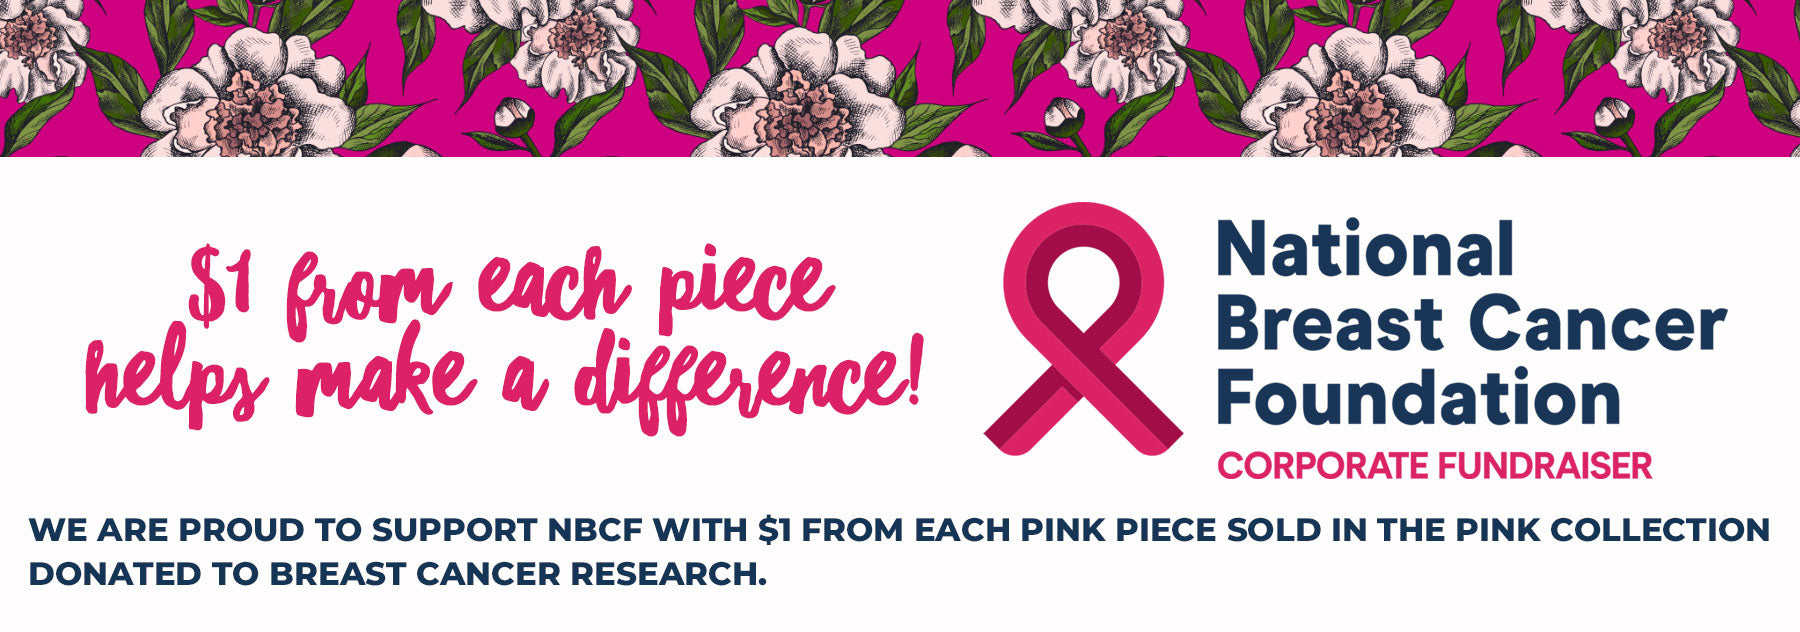 The Pink Collection - National Breast Cancer Foundation $1 from each product donated to Breast cancer resreach - Pink pendant necklaces, charm bracelets, earrings and keyrings  make the perfect gift for friends teachers Mums and Sisters.